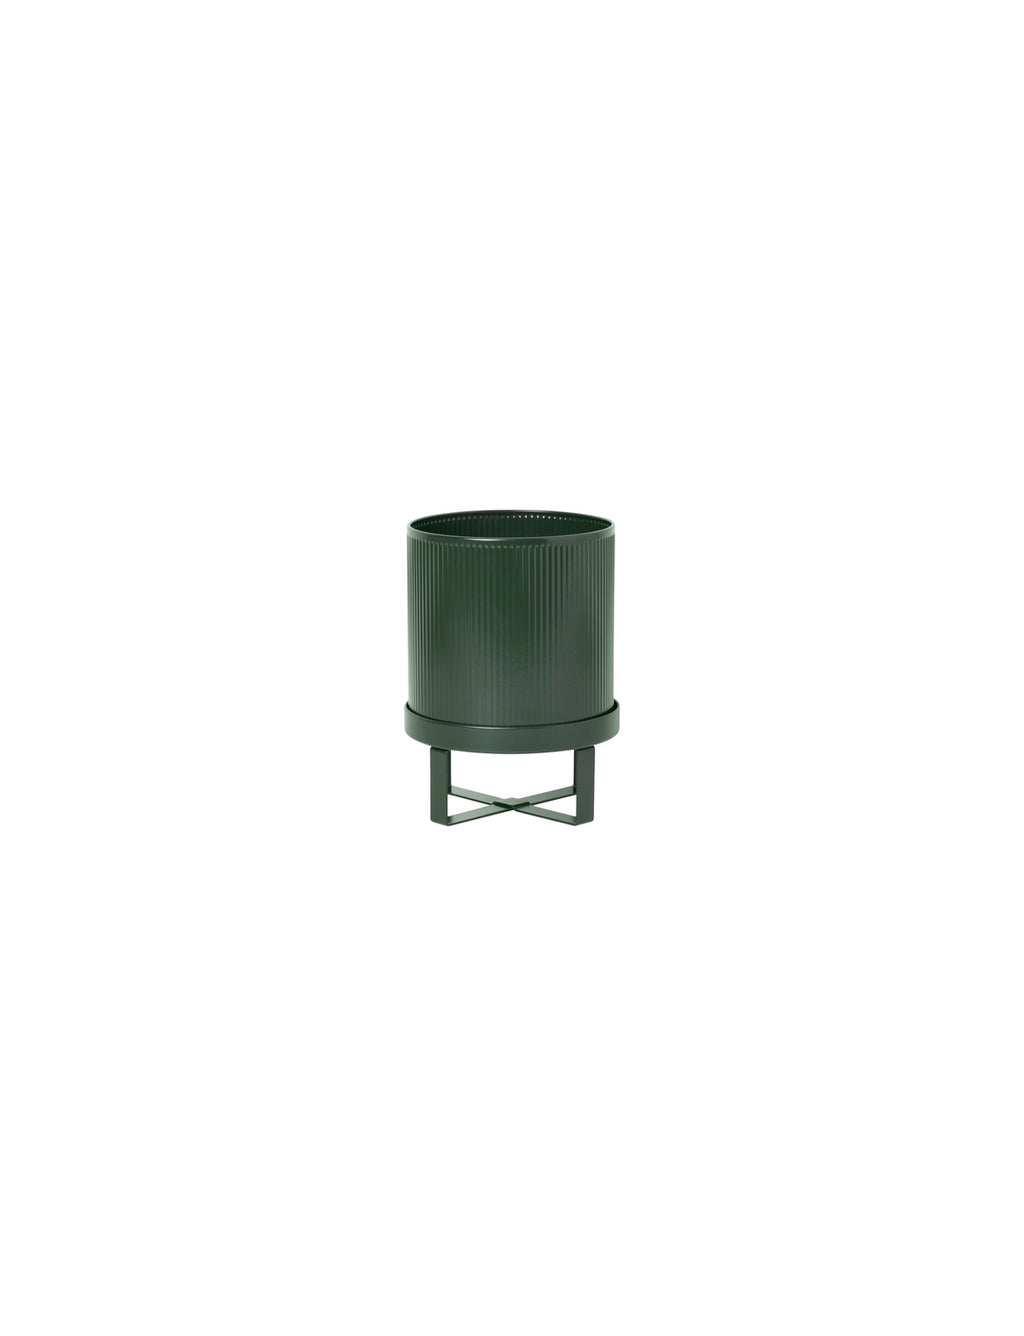 "7"" Ferm Living Bau Pot in Dark Green"